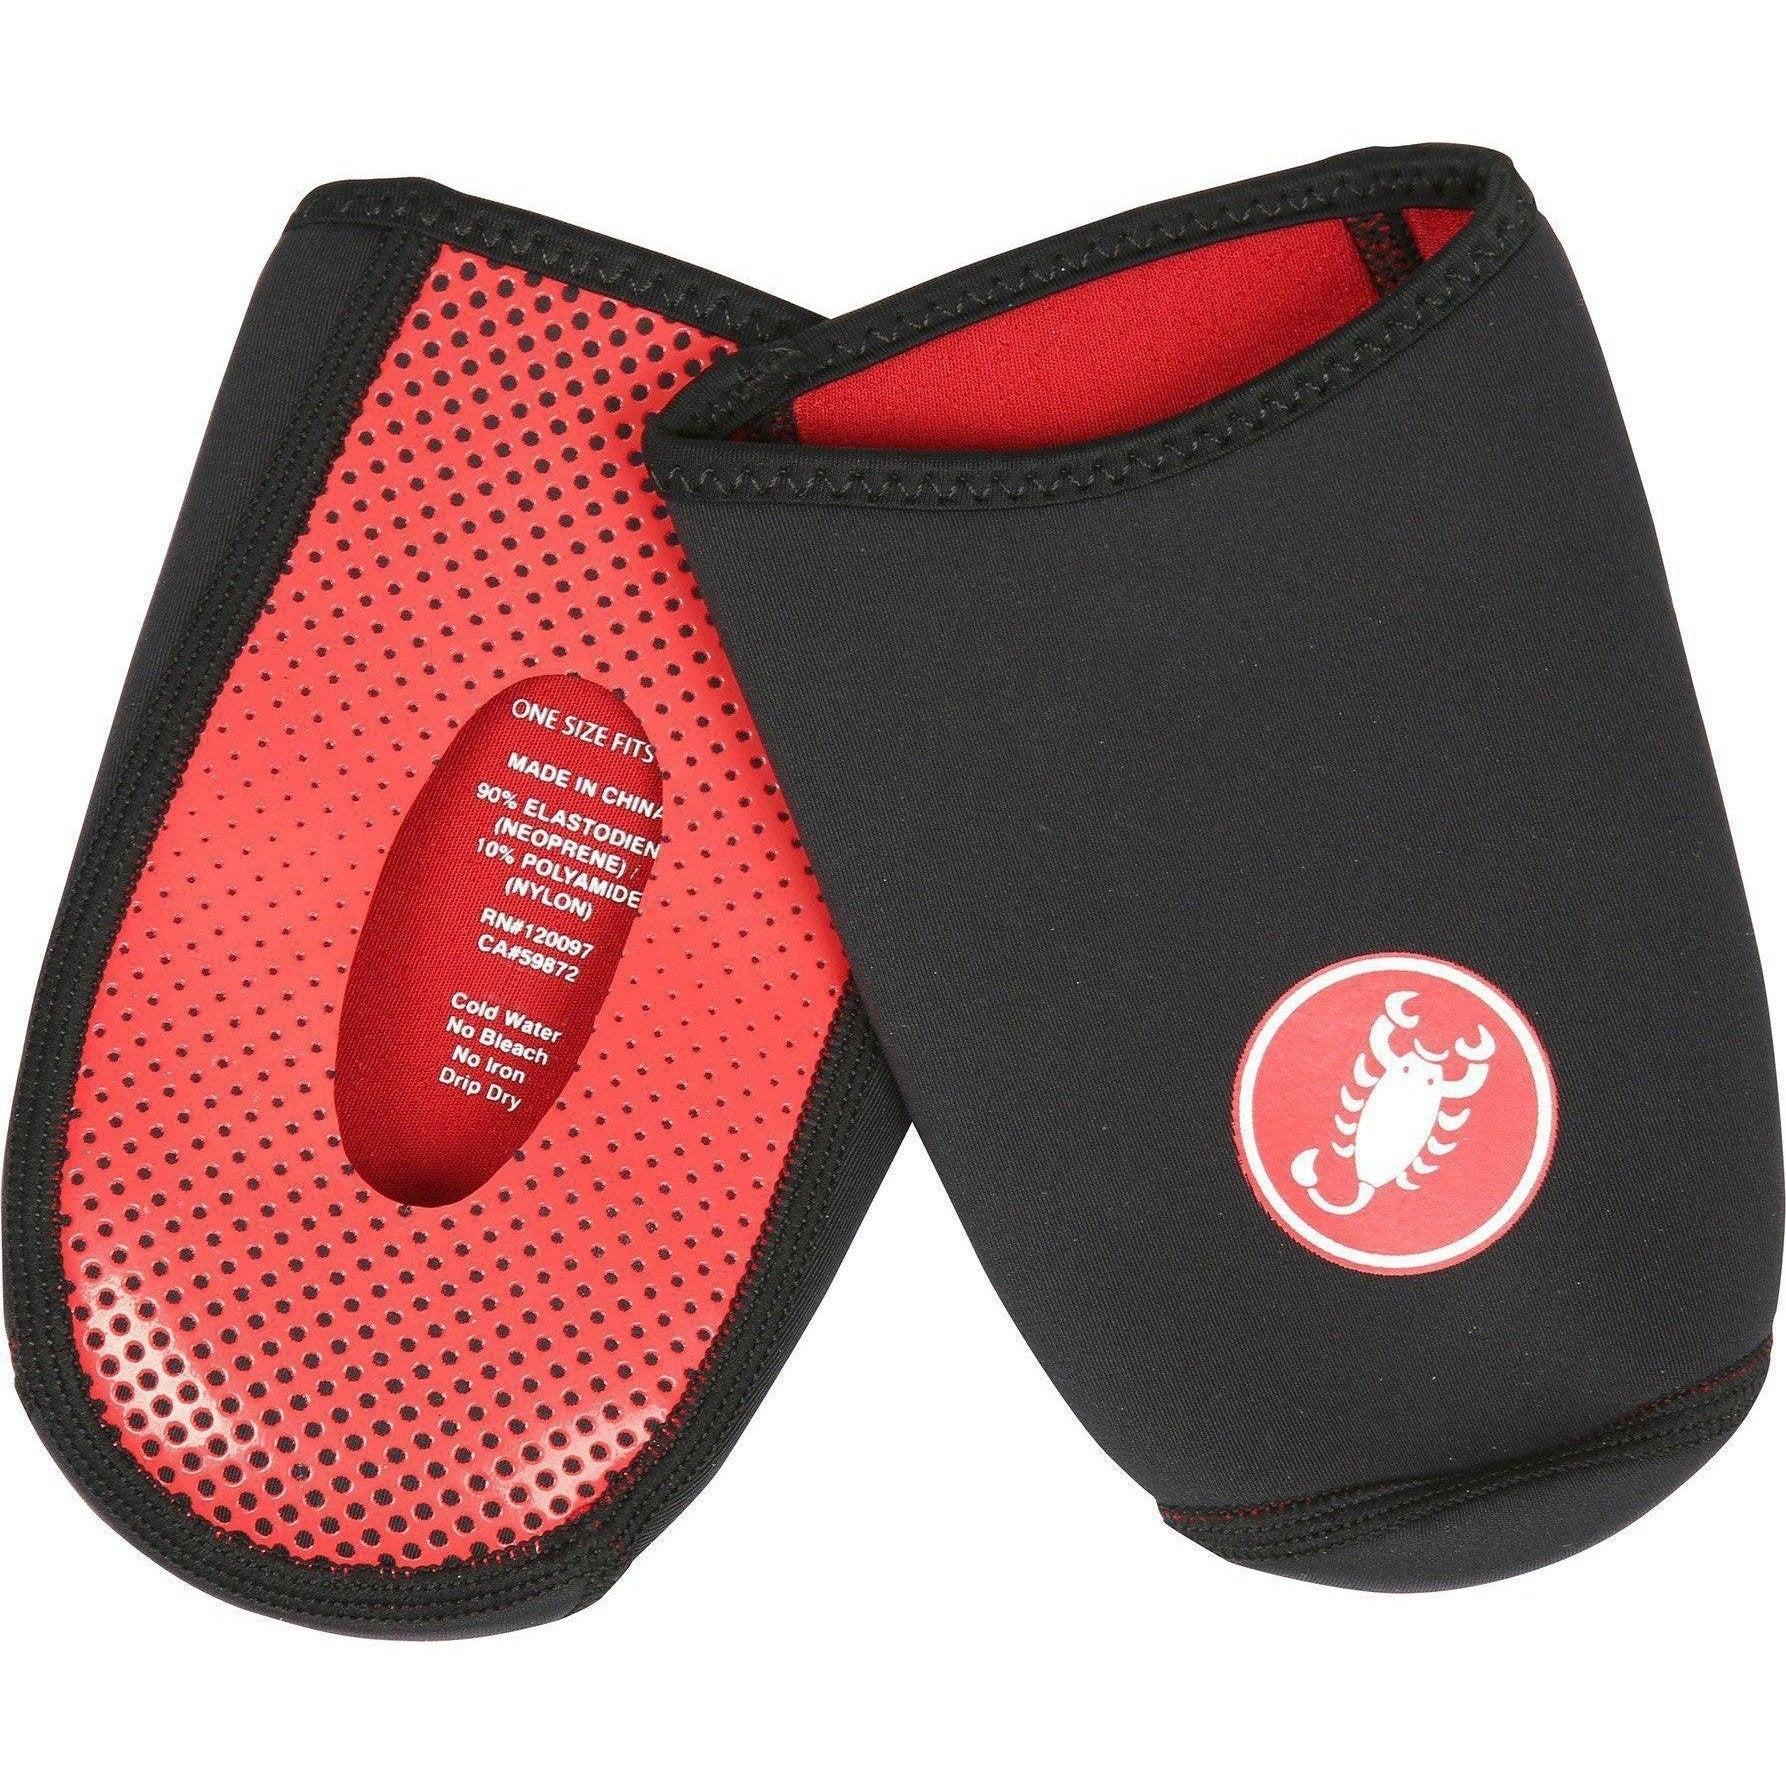 Castelli-Castelli Toe Thingy 2 Toe Covers-Black-Uni-CS180930108-saddleback-elite-performance-cycling